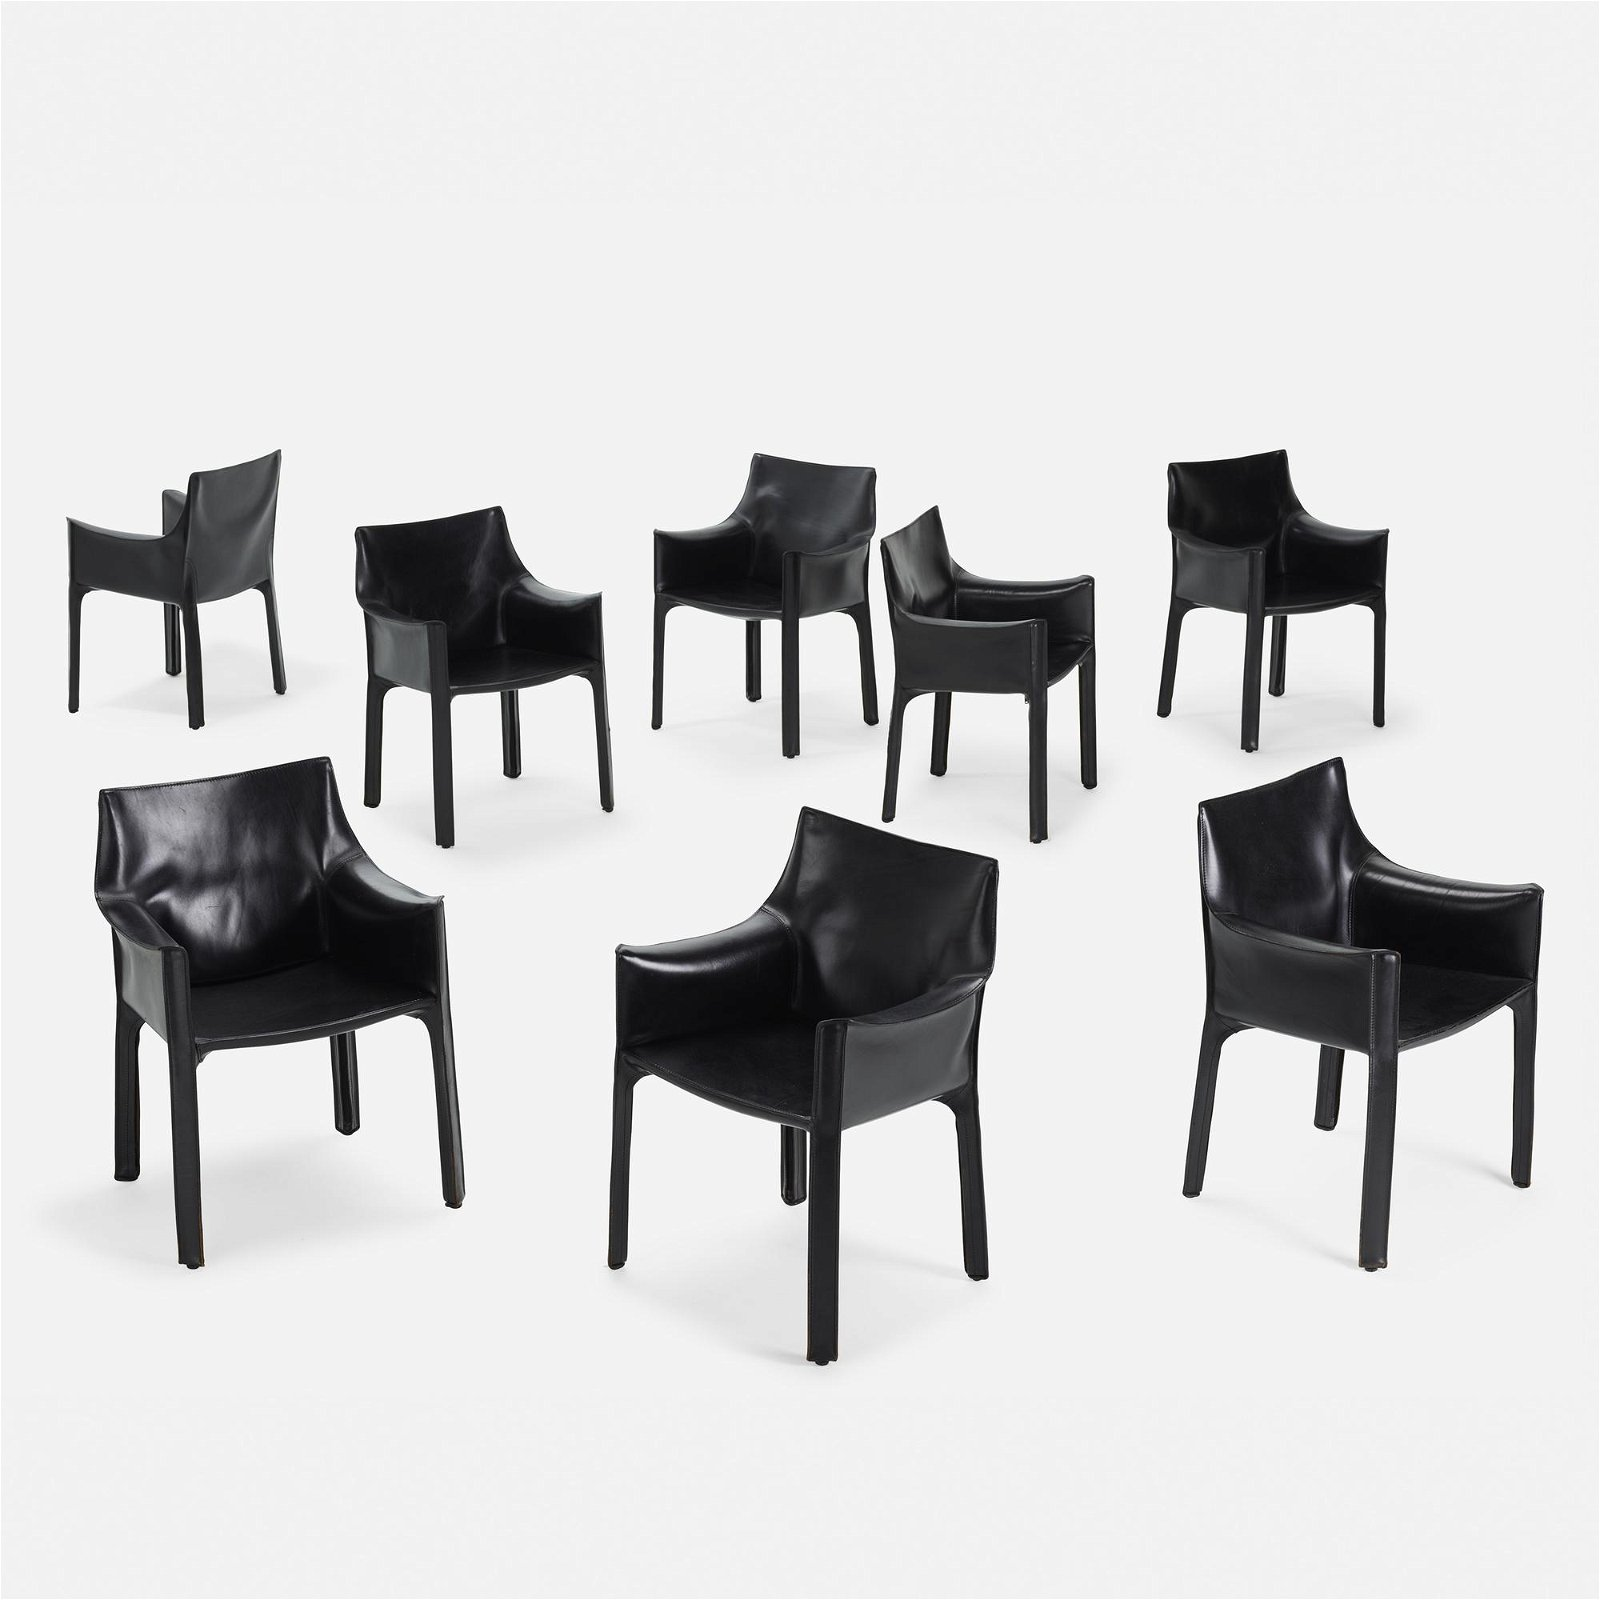 Mario Bellini, Cab chairs, set of eight